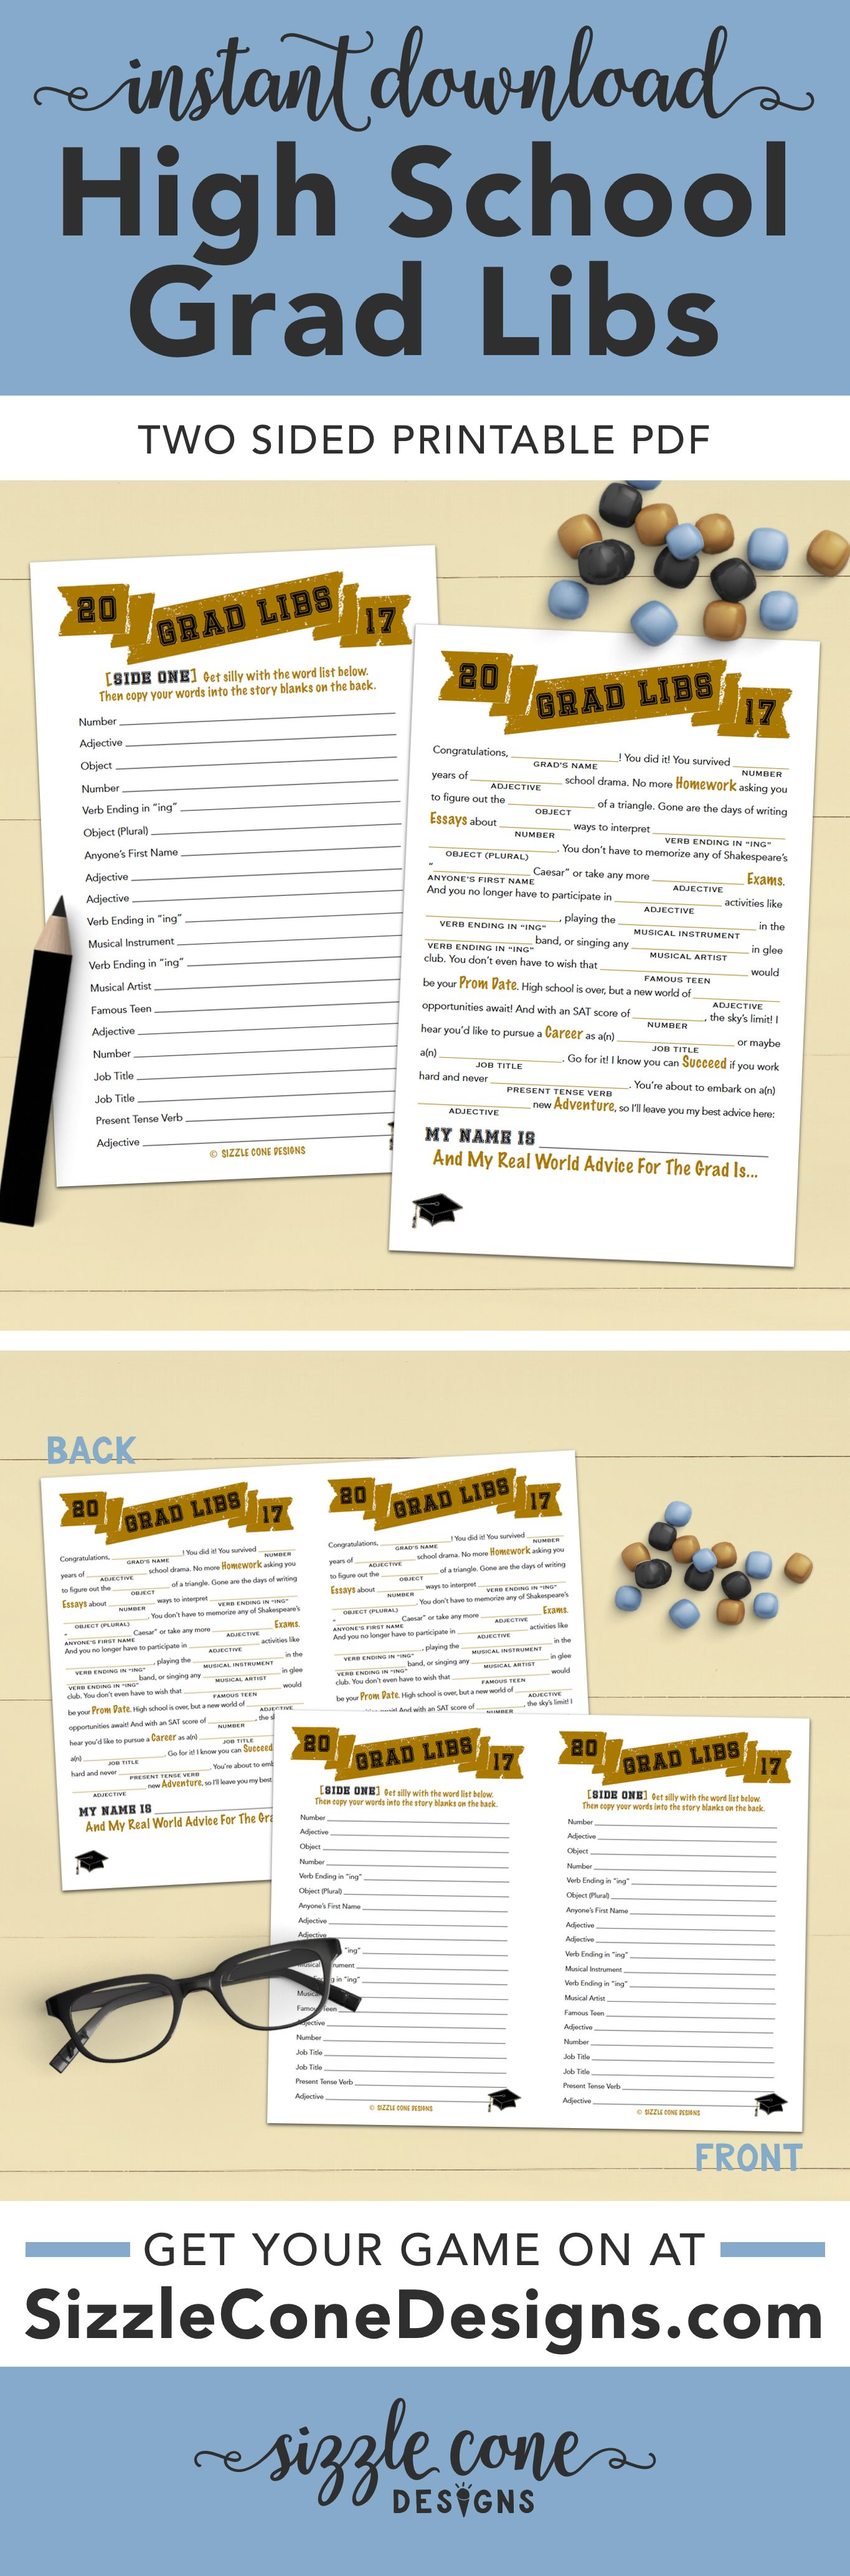 Graduation Party Planning Timeline (A Free Infographic) | Stress ...